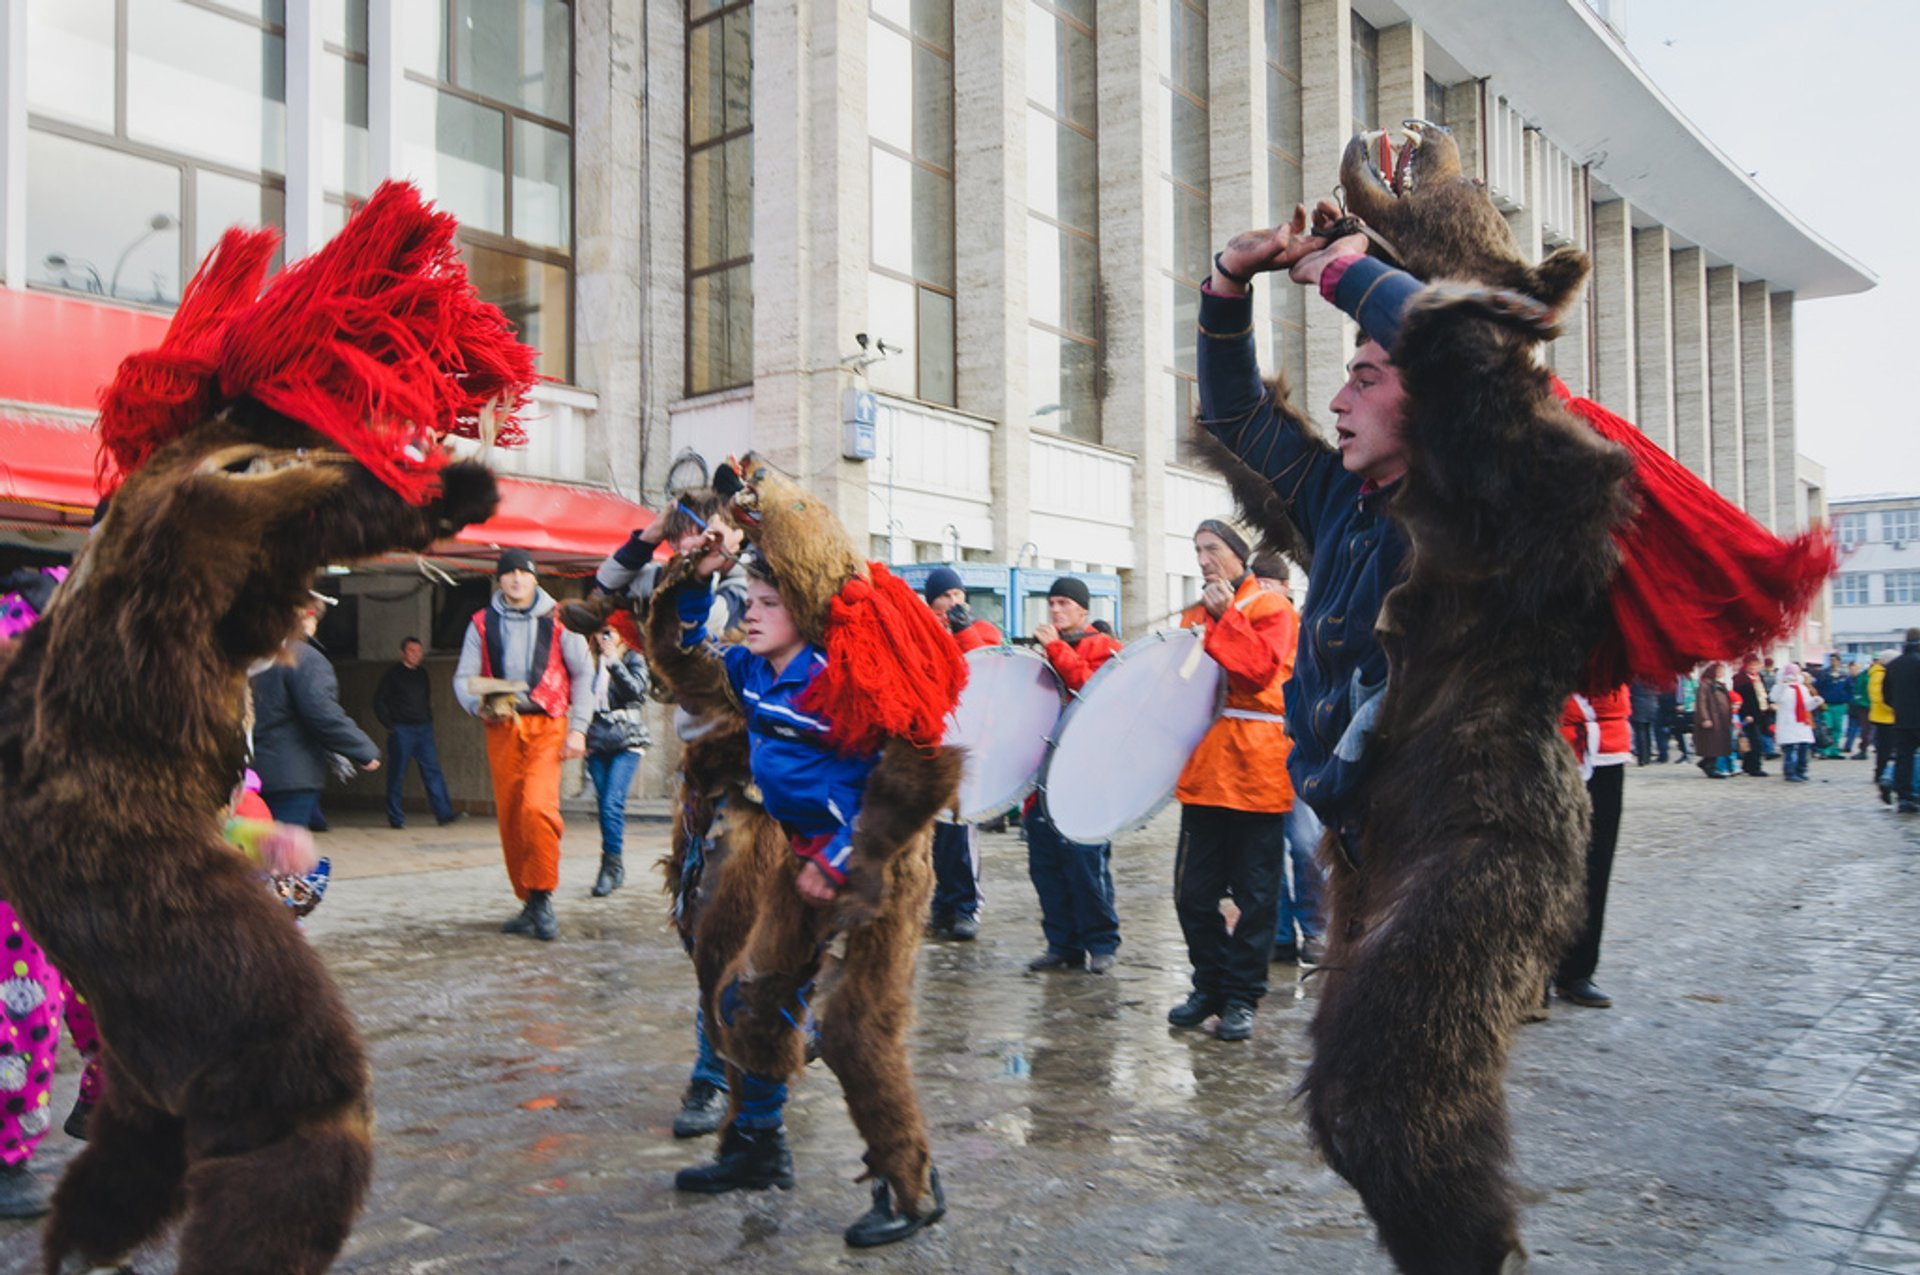 New Year Bears in Romania 2019 - Best Time